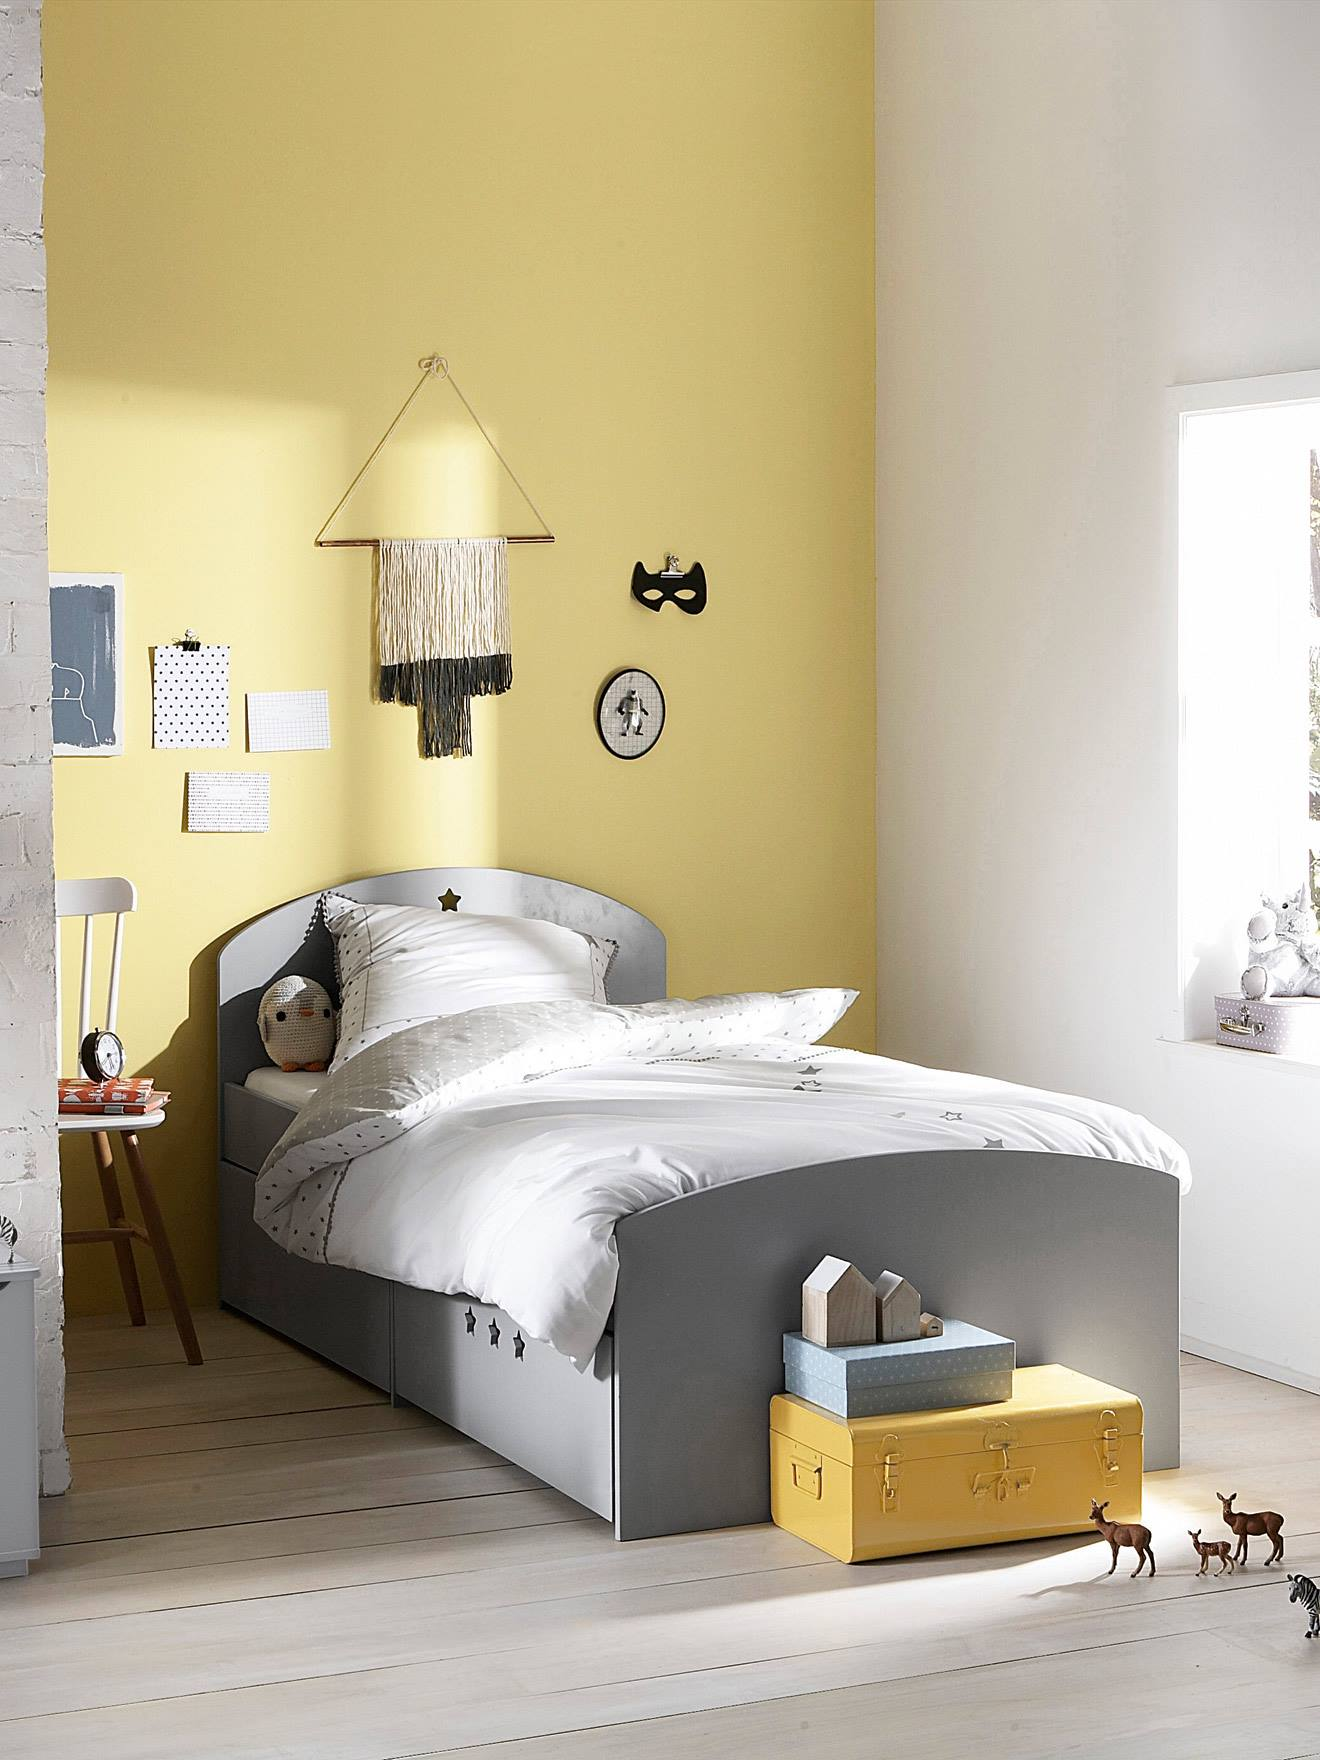 vertbaudet lit bebe lit bb romantique barreaux blanc vertbaudet enfant with vertbaudet lit bebe. Black Bedroom Furniture Sets. Home Design Ideas